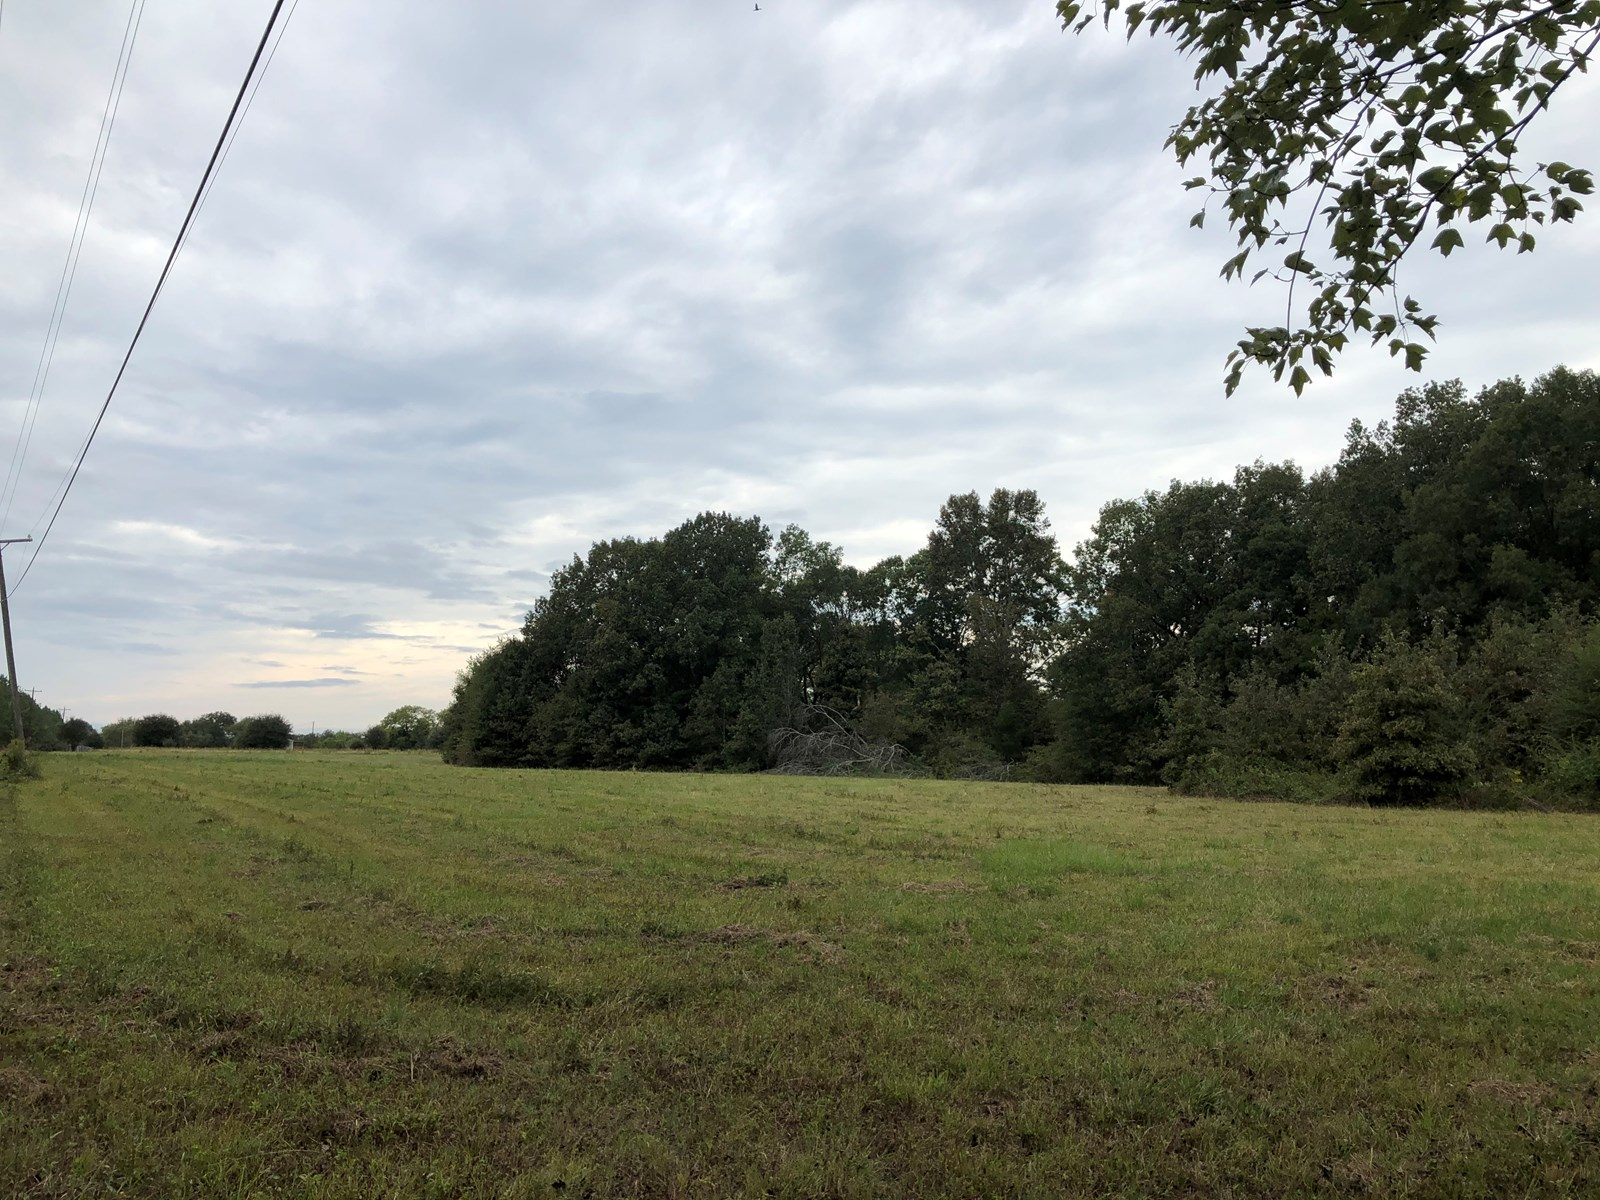 Land for Sale - Gilmer Wilburn Rd, Columbus, MS - 5 Acre Lot